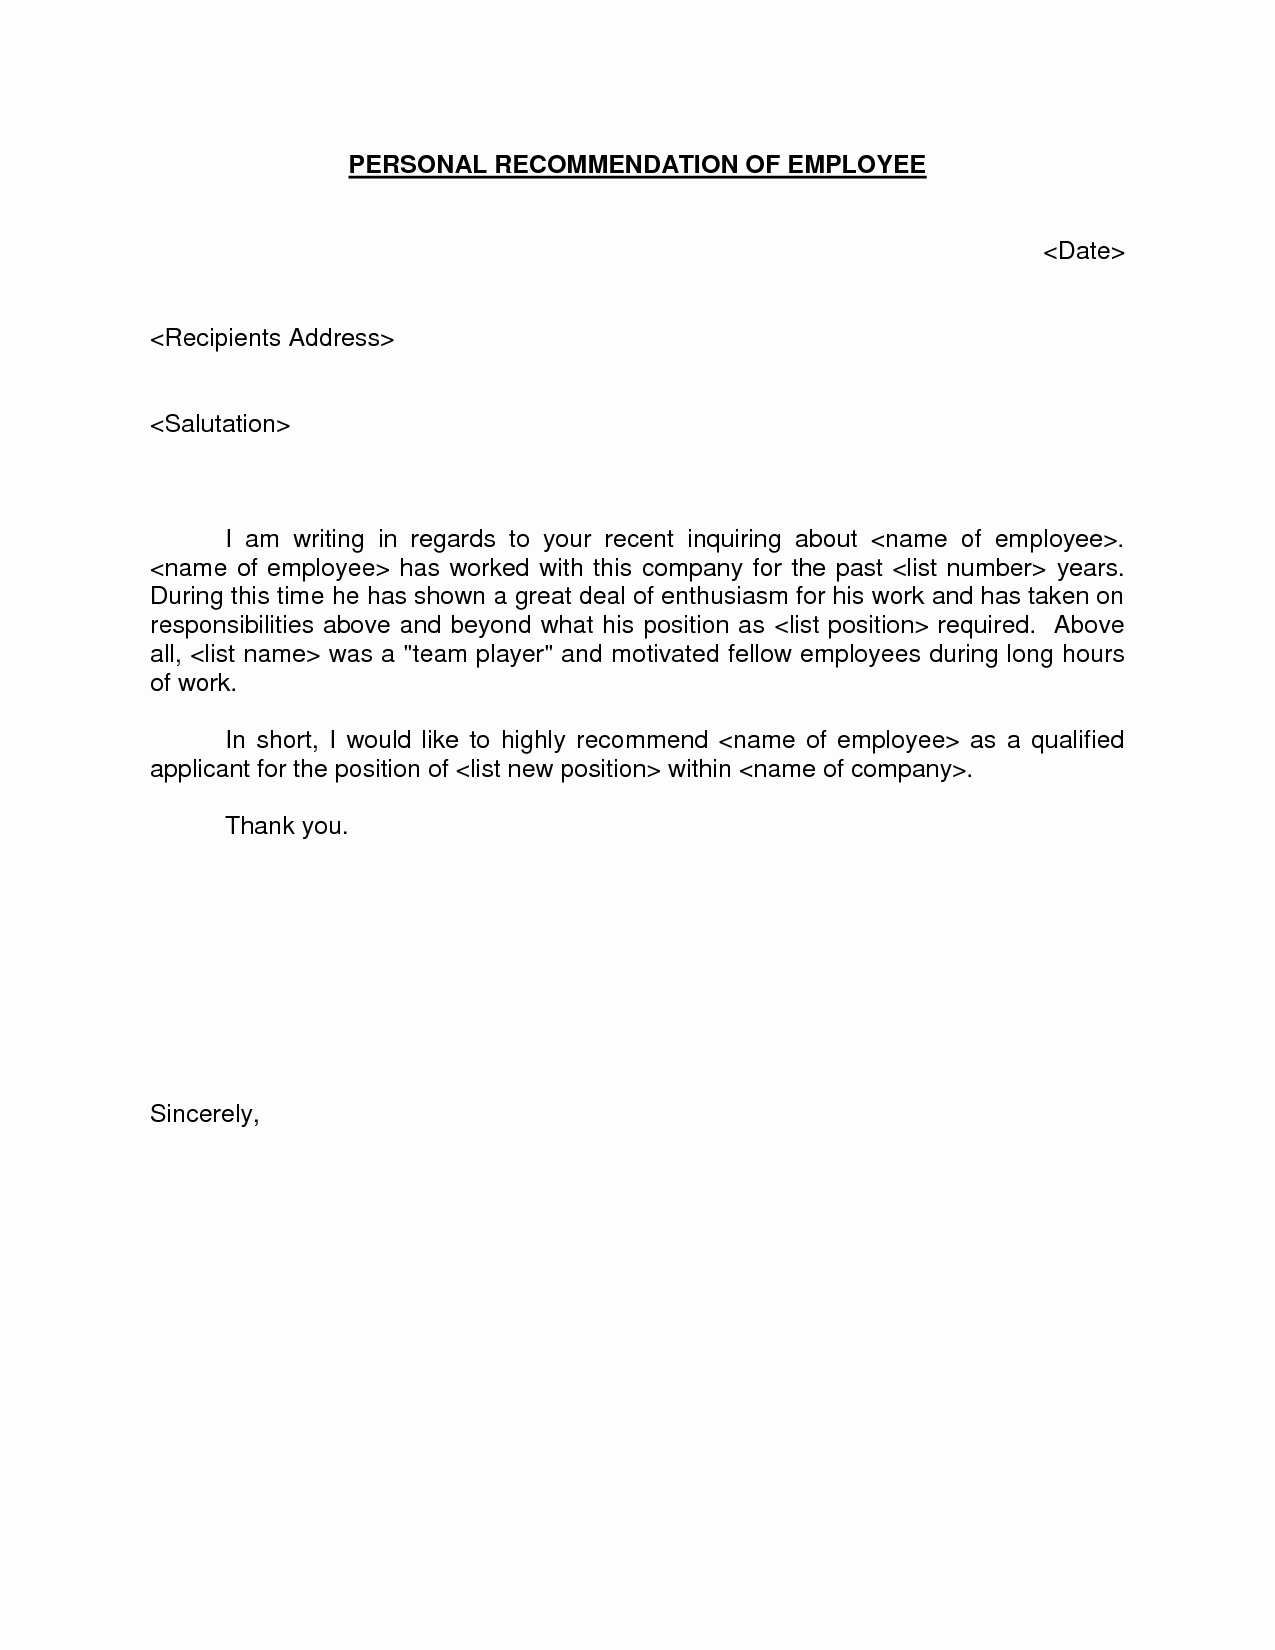 Template Letter Of Recommendation New Pin by Carmen Cruz On Birthdays